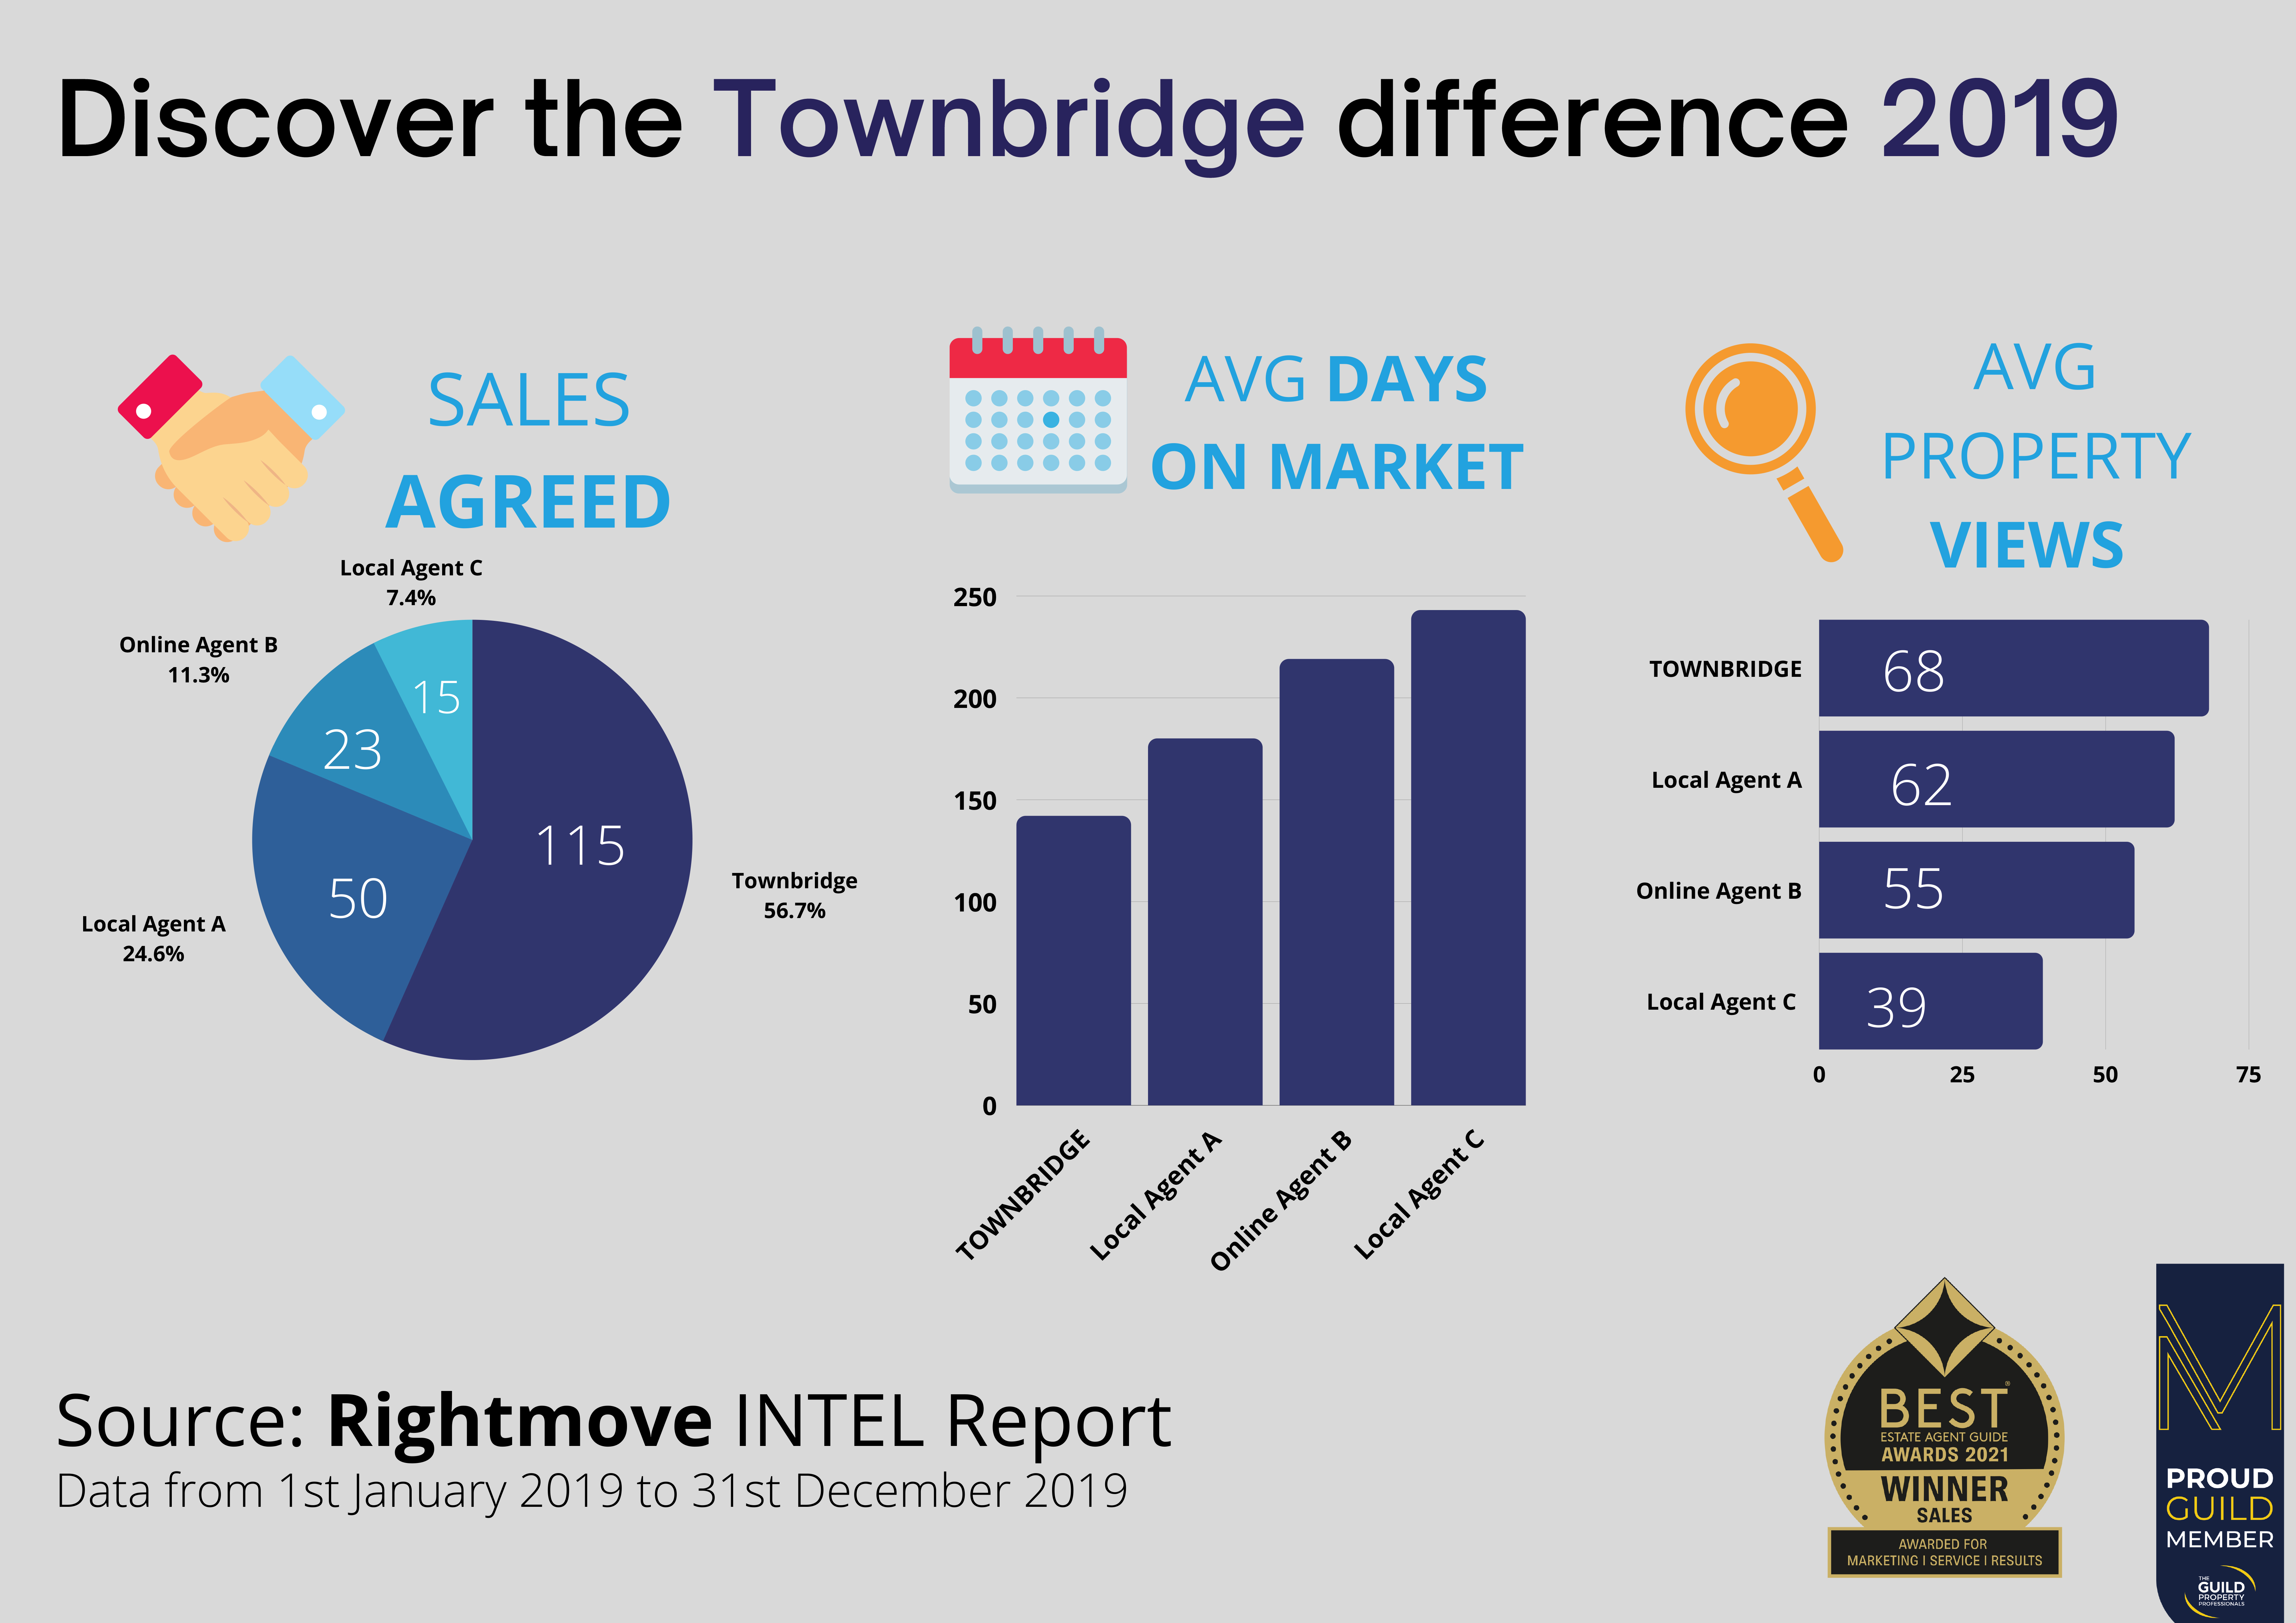 townbridge_2019_-_difference